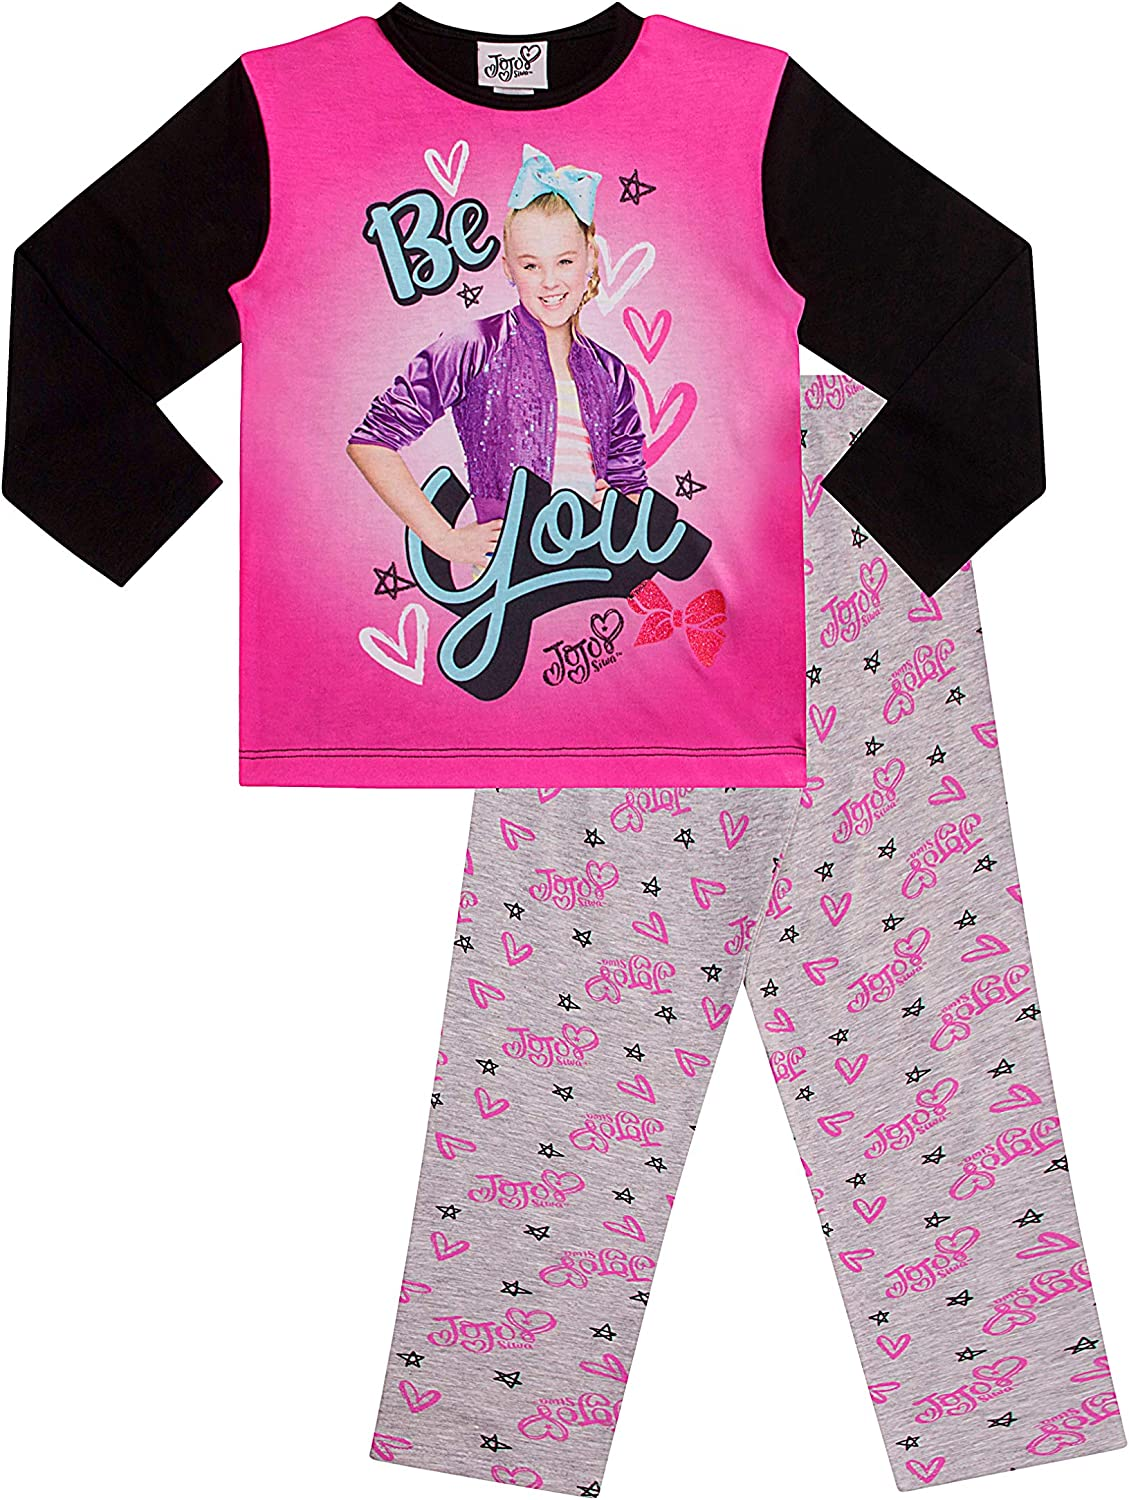 Pigiama ufficiale JoJo Siwa Be You Long Jo Jo Jo